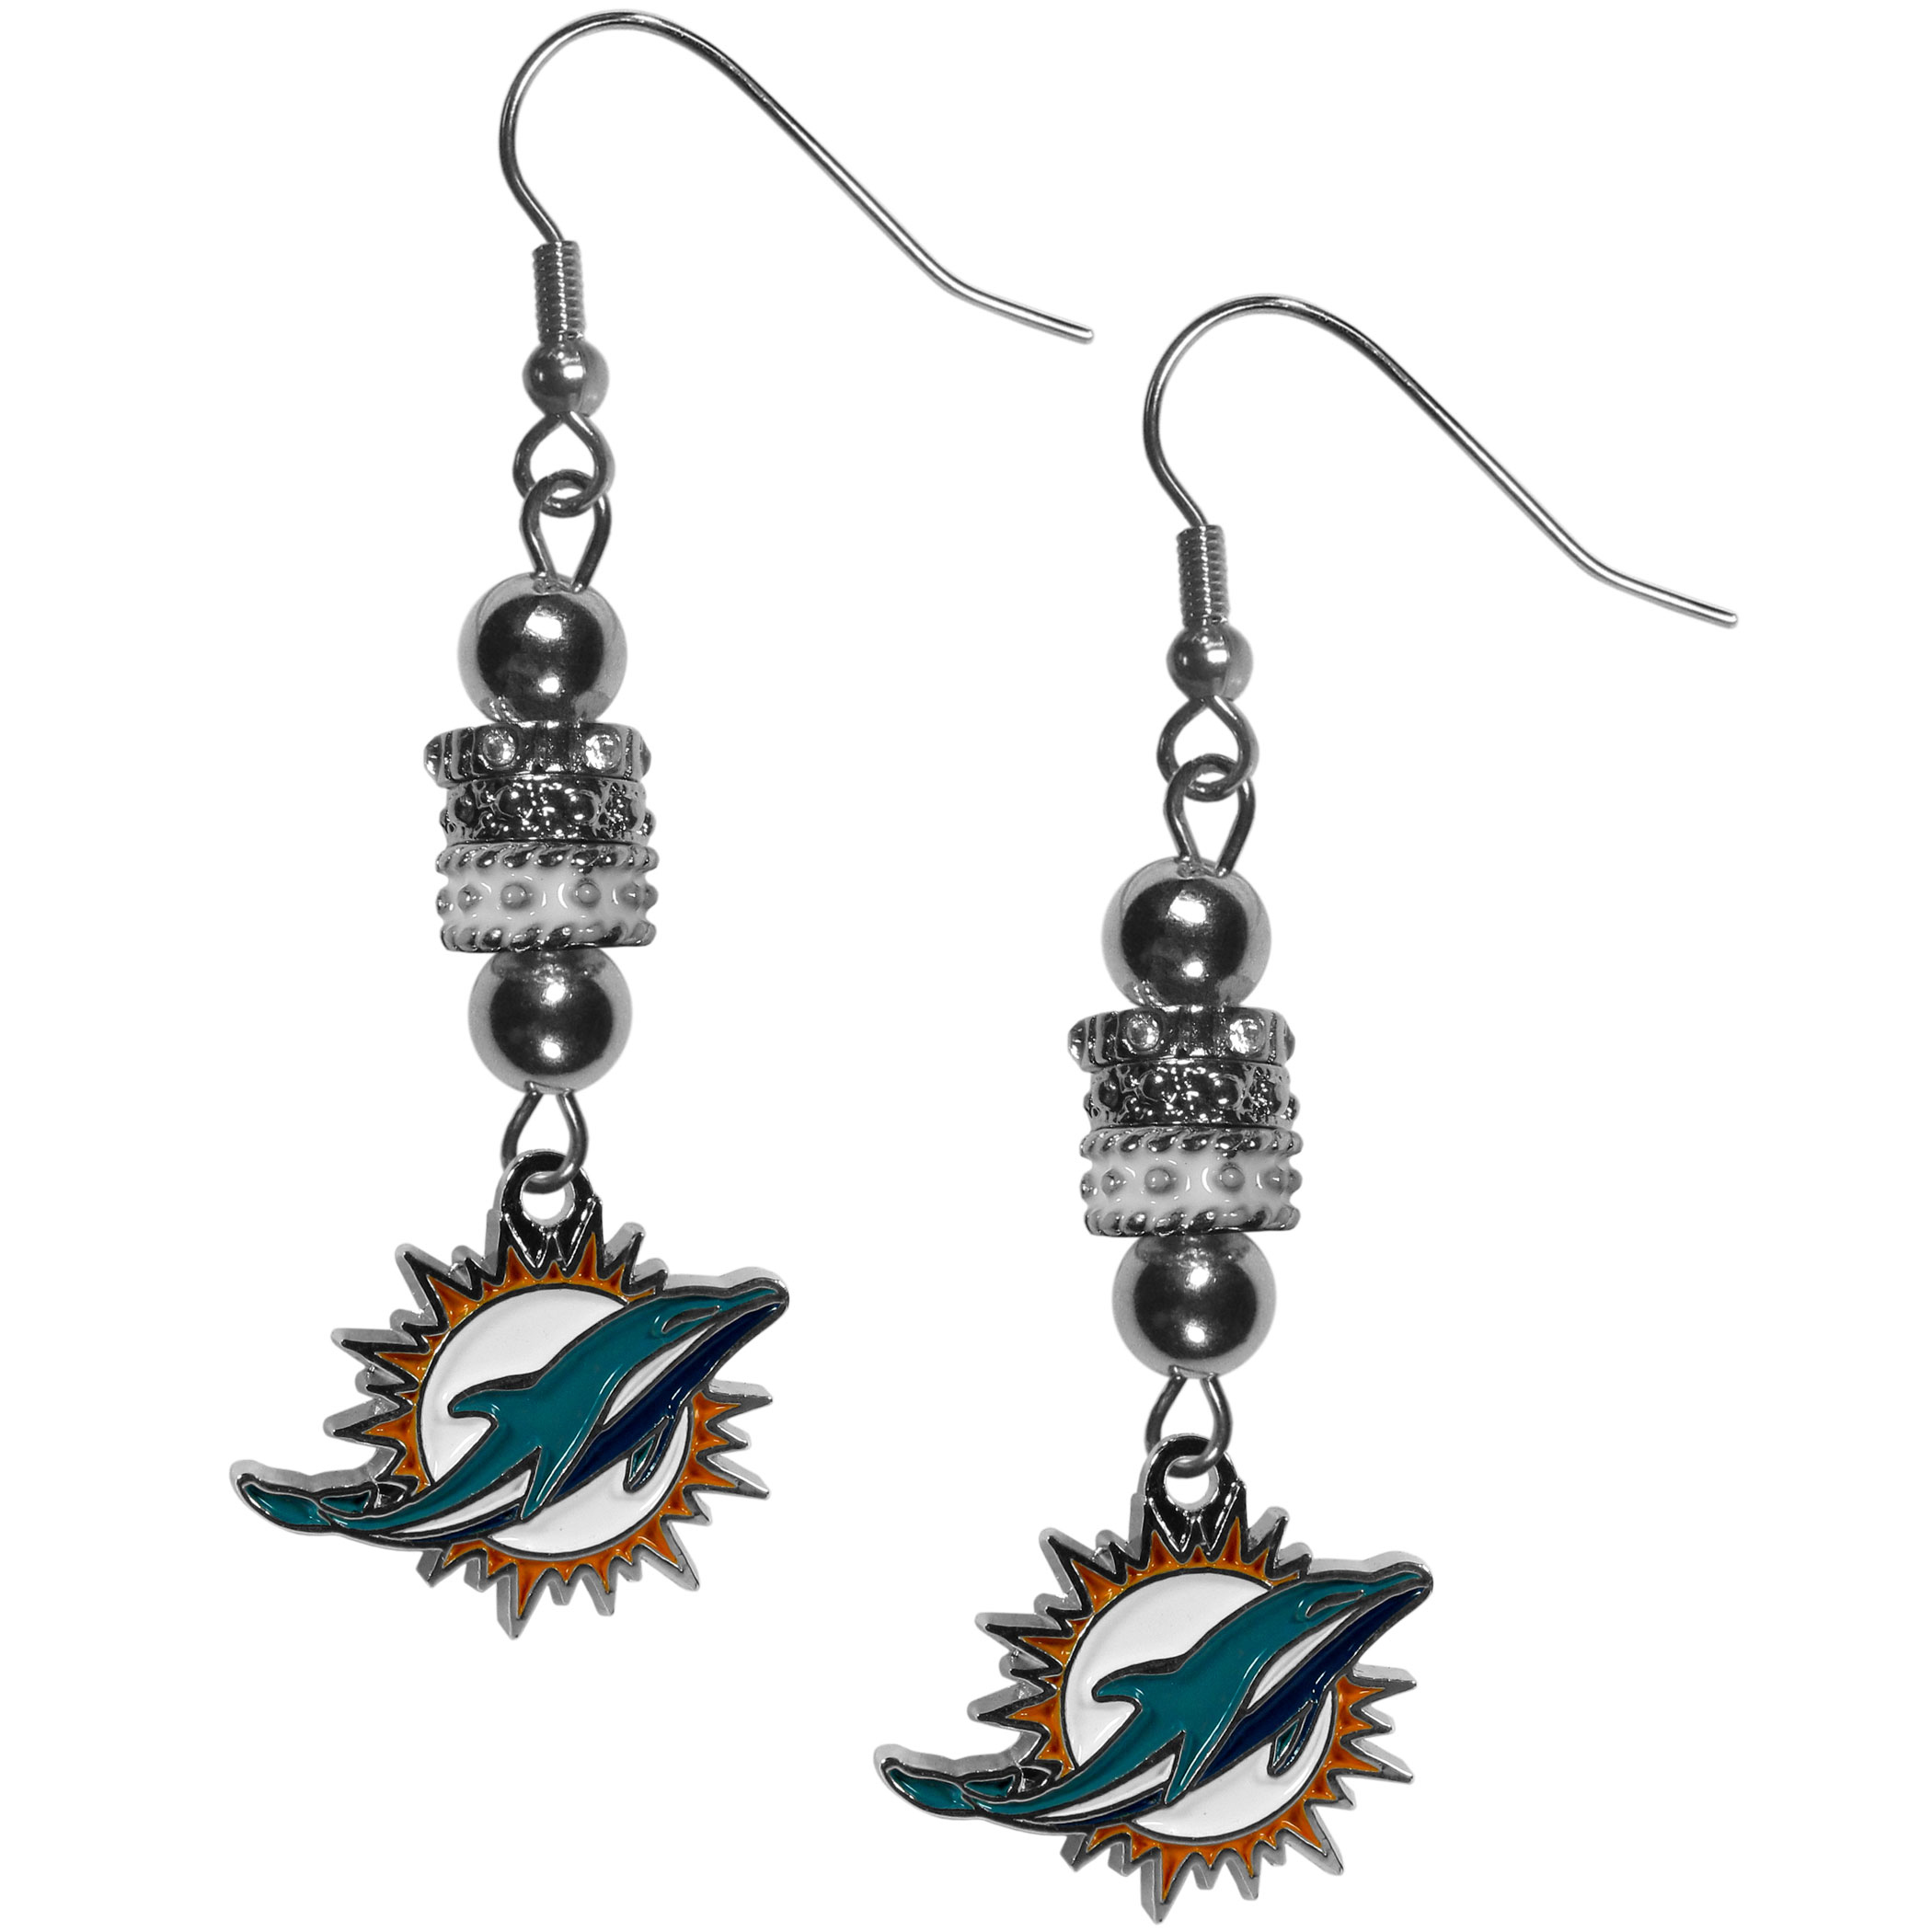 Miami Dolphins Euro Bead Earrings - These beautiful euro style earrings feature 3 euro beads and a detailed Miami Dolphins charm on hypoallergenic fishhook posts.